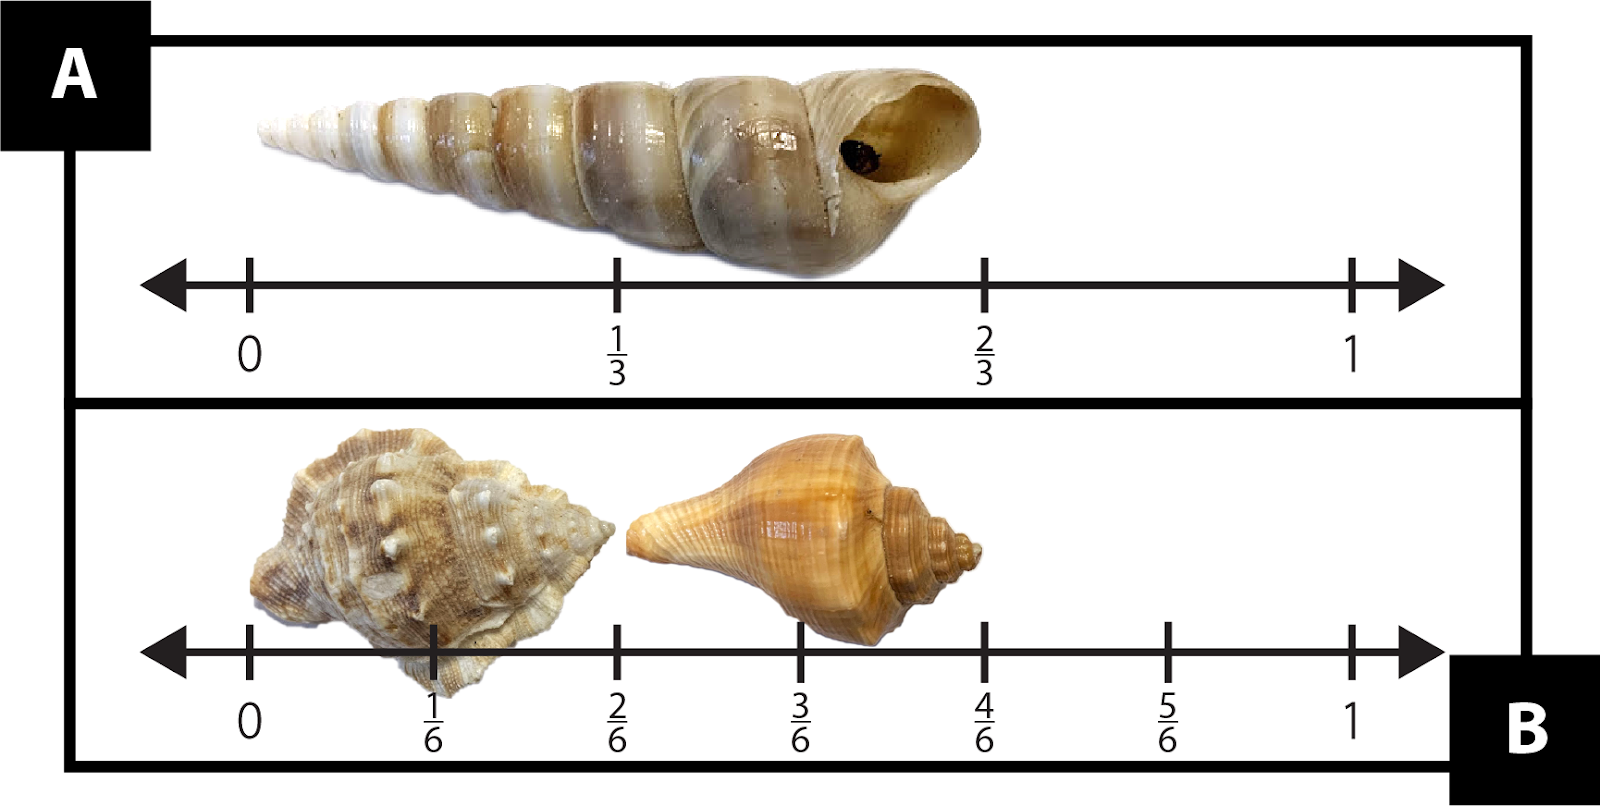 A: A shell is measured on a number line marked in thirds from 0 to 1. The shell measures 2-thirds of a unit long. B: Two shells measured on a number line marked in sixths. The first measures from 0 to 2-sixths of a unit long. The second measures from 2-sixths to 4-sixths of a unit long.